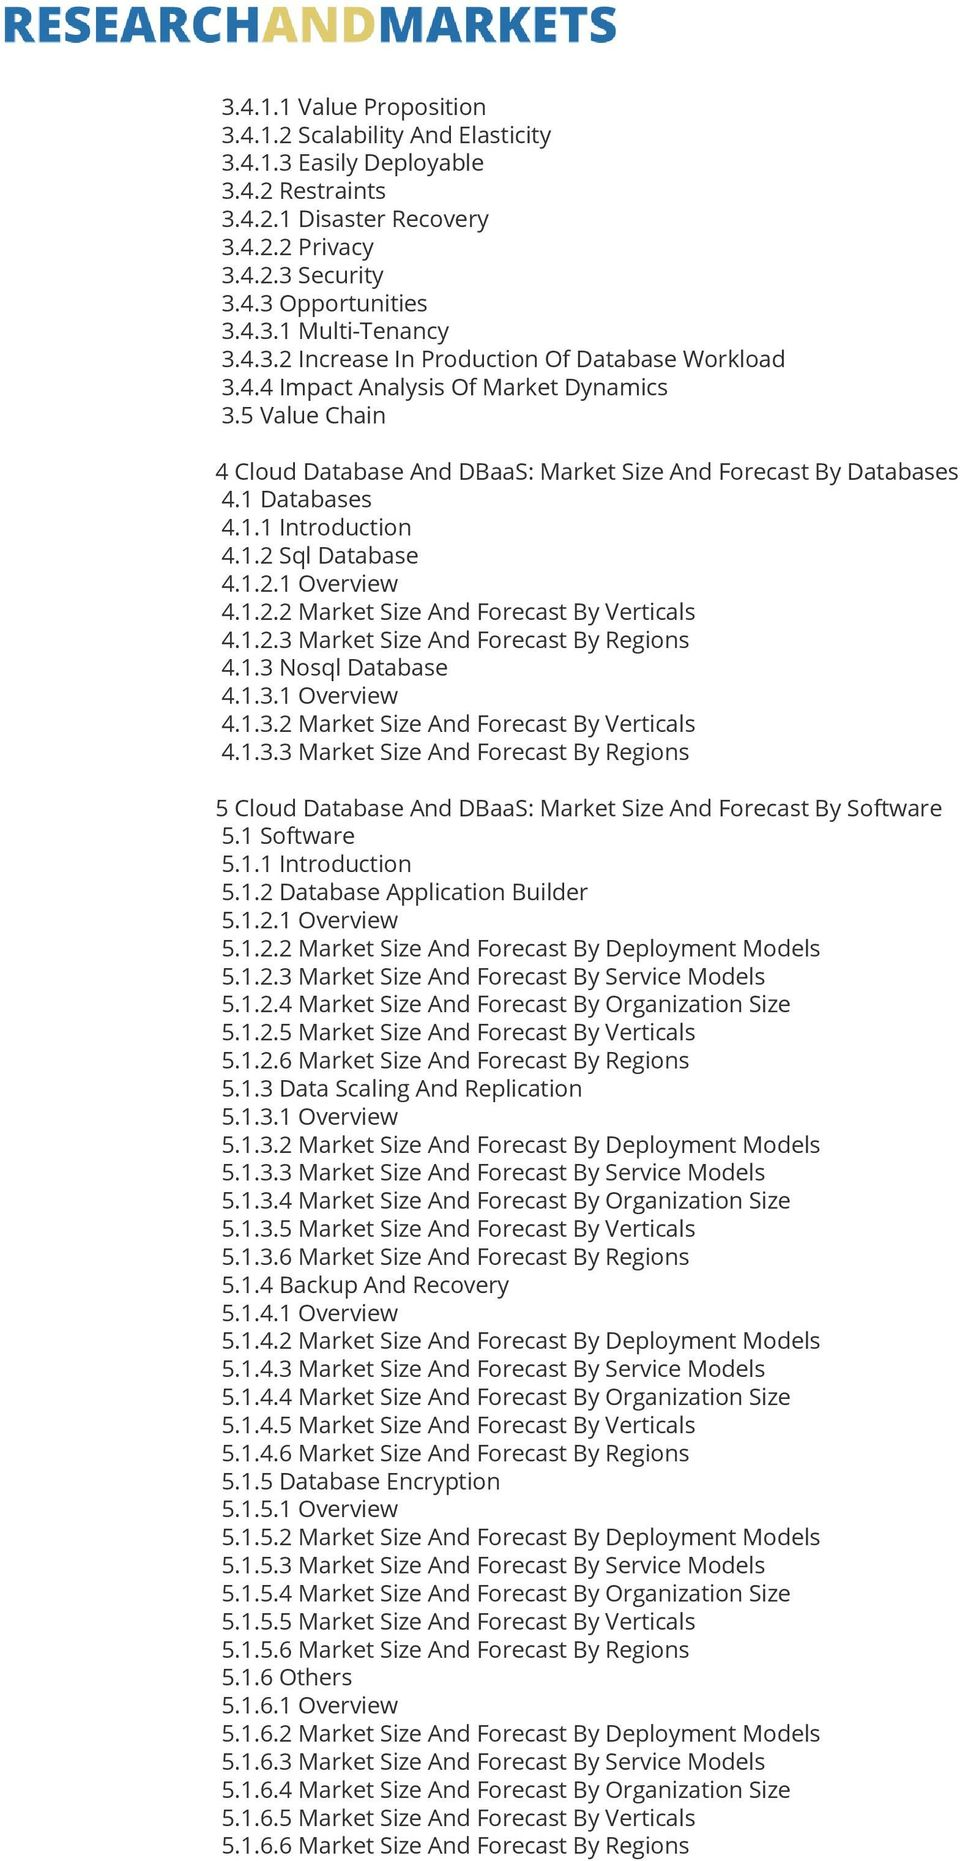 1.2 Sql Database 4.1.2.1 Overview 4.1.2.2 Market Size And Forecast By Verticals 4.1.2.3 Market Size And Forecast By Regions 4.1.3 Nosql Database 4.1.3.1 Overview 4.1.3.2 Market Size And Forecast By Verticals 4.1.3.3 Market Size And Forecast By Regions 5 Cloud Database And DBaaS: Market Size And Forecast By Software 5.